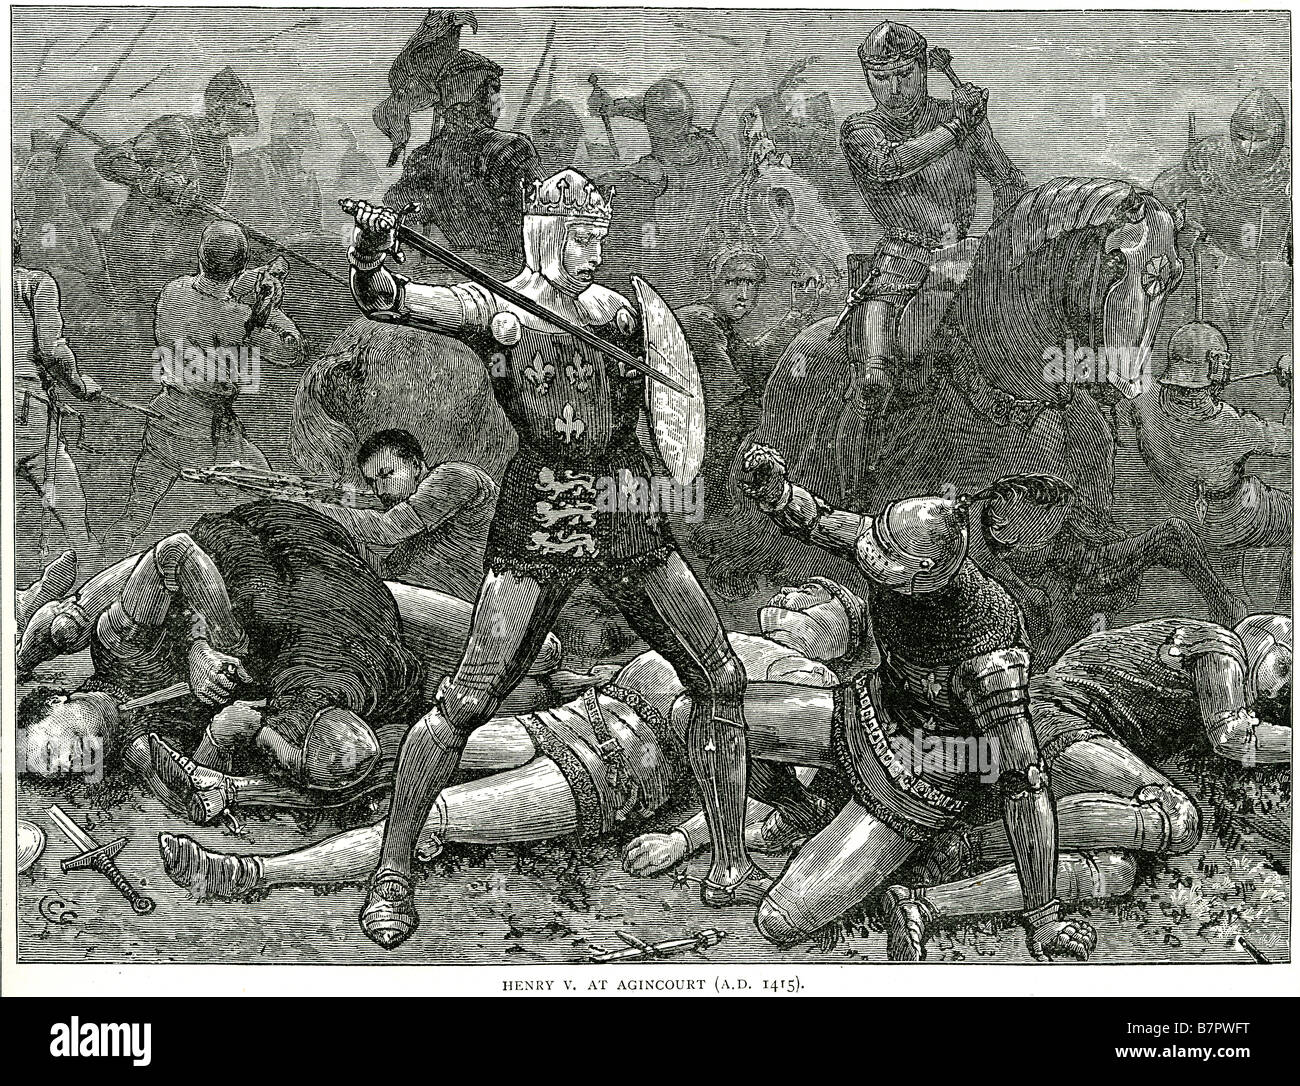 Agincourt Battle 1415 Stock Photos and Images